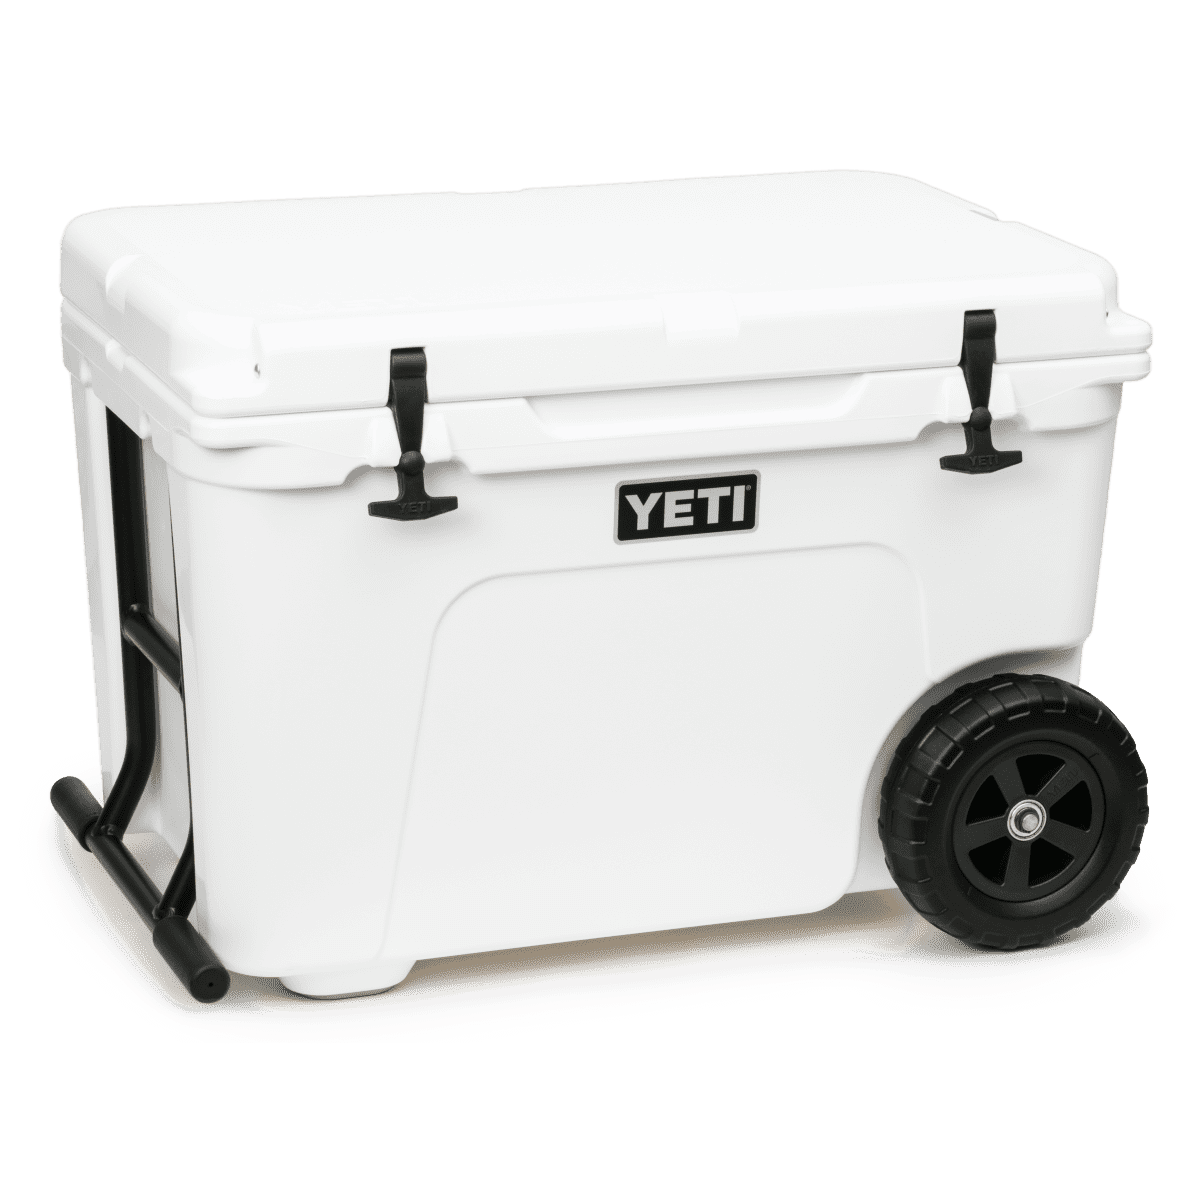 The Best Wheeled Yeti Cooler | Cook's Illustrated